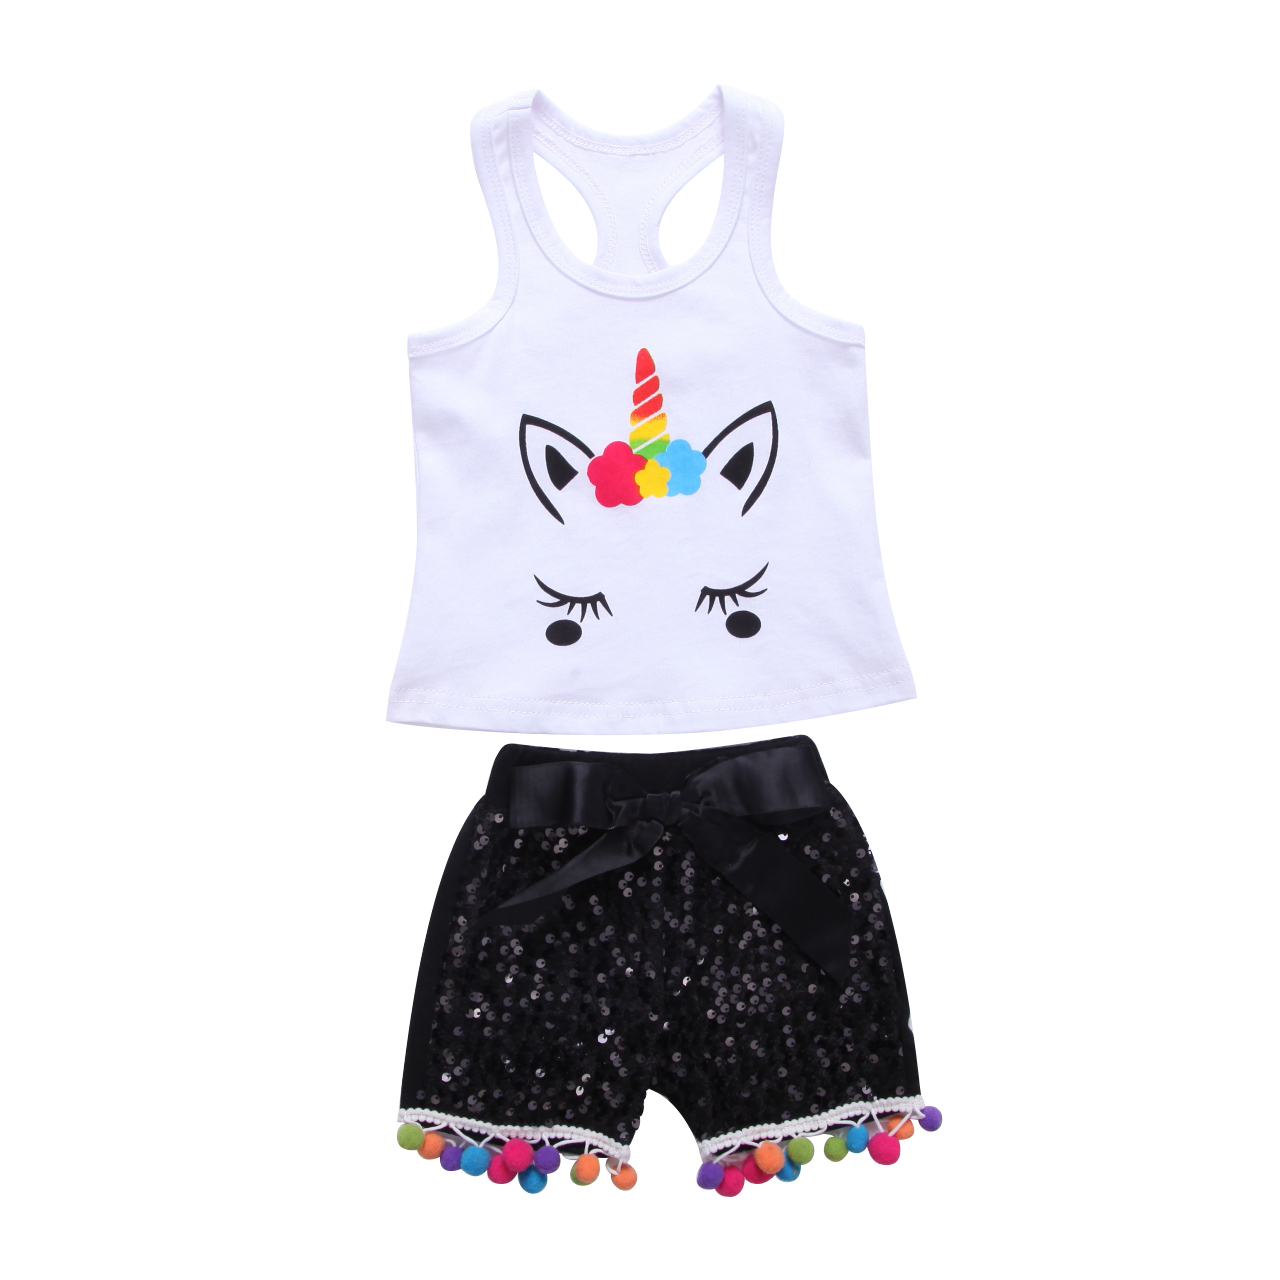 Shorts Skirt Outfits Clothes Set Kids Baby Girls 2PCS Gemstone Print T-Shirt Tops